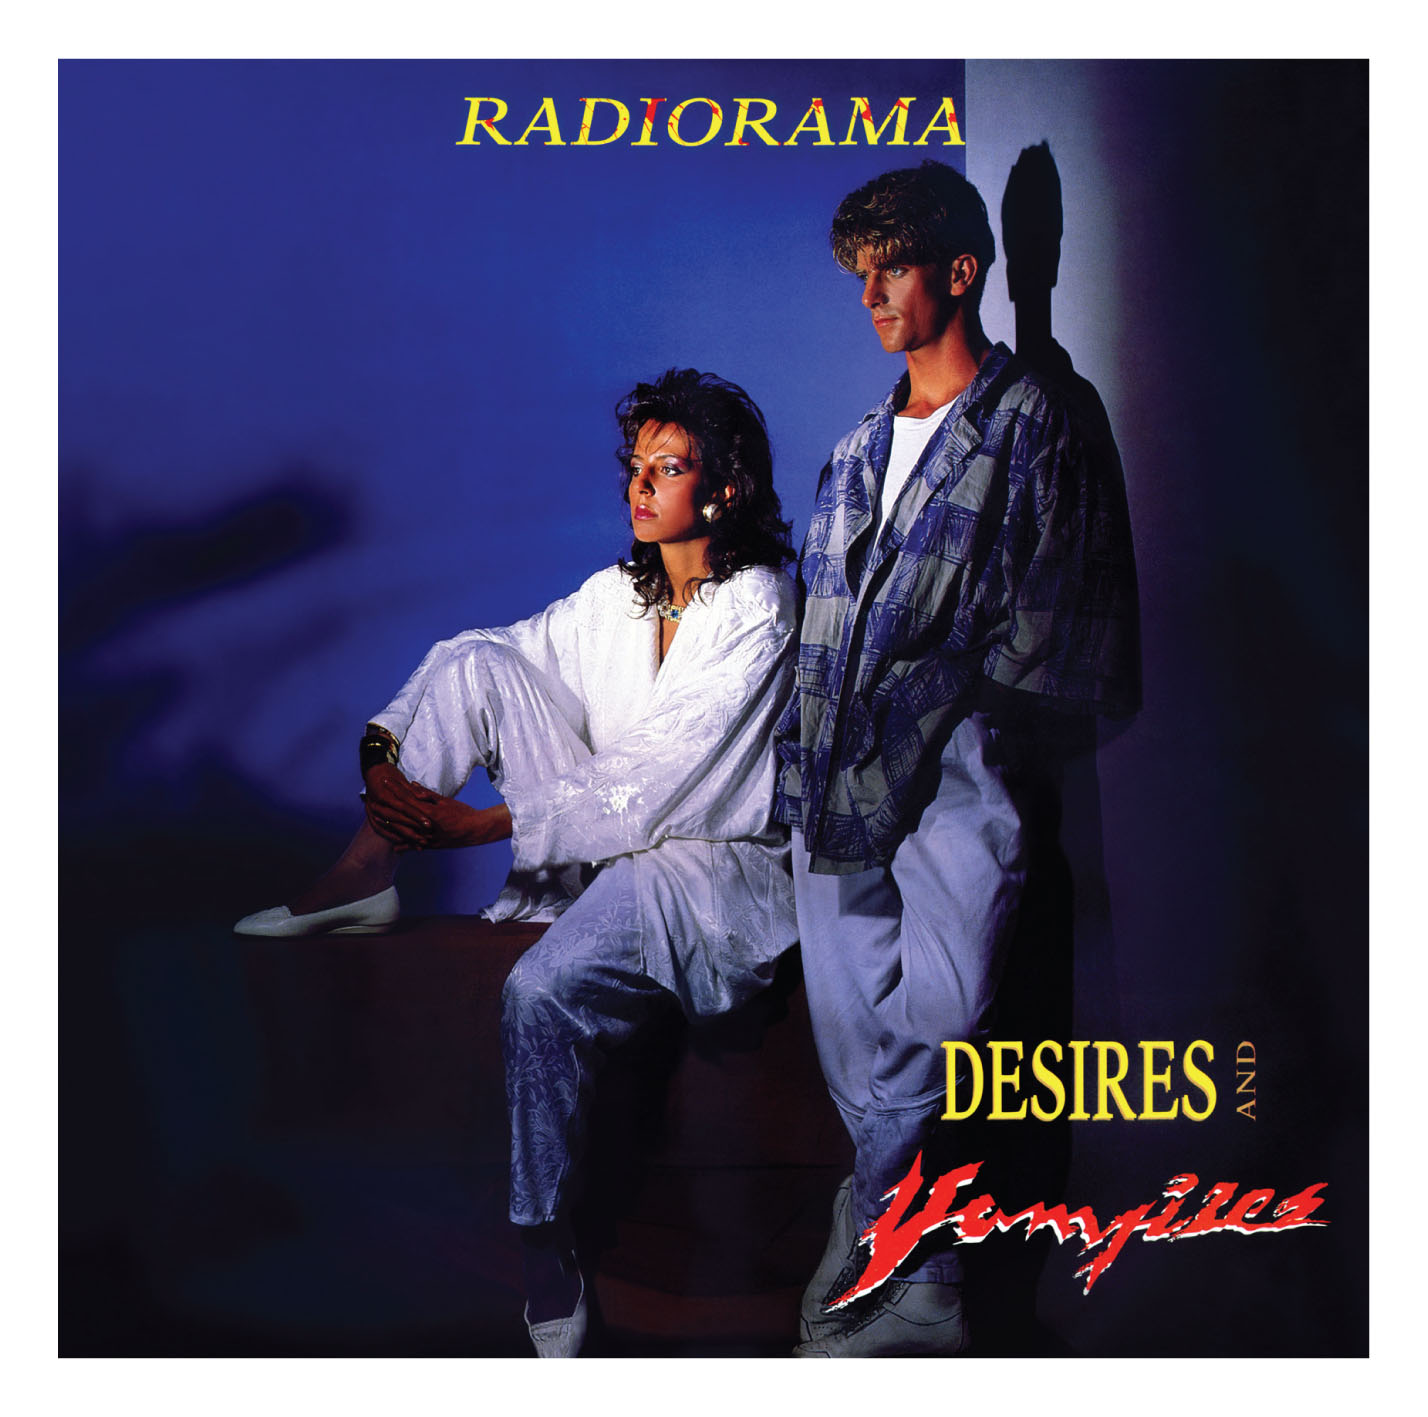 Radiorama – Desires & Vampires (30th Anniversary Edition)